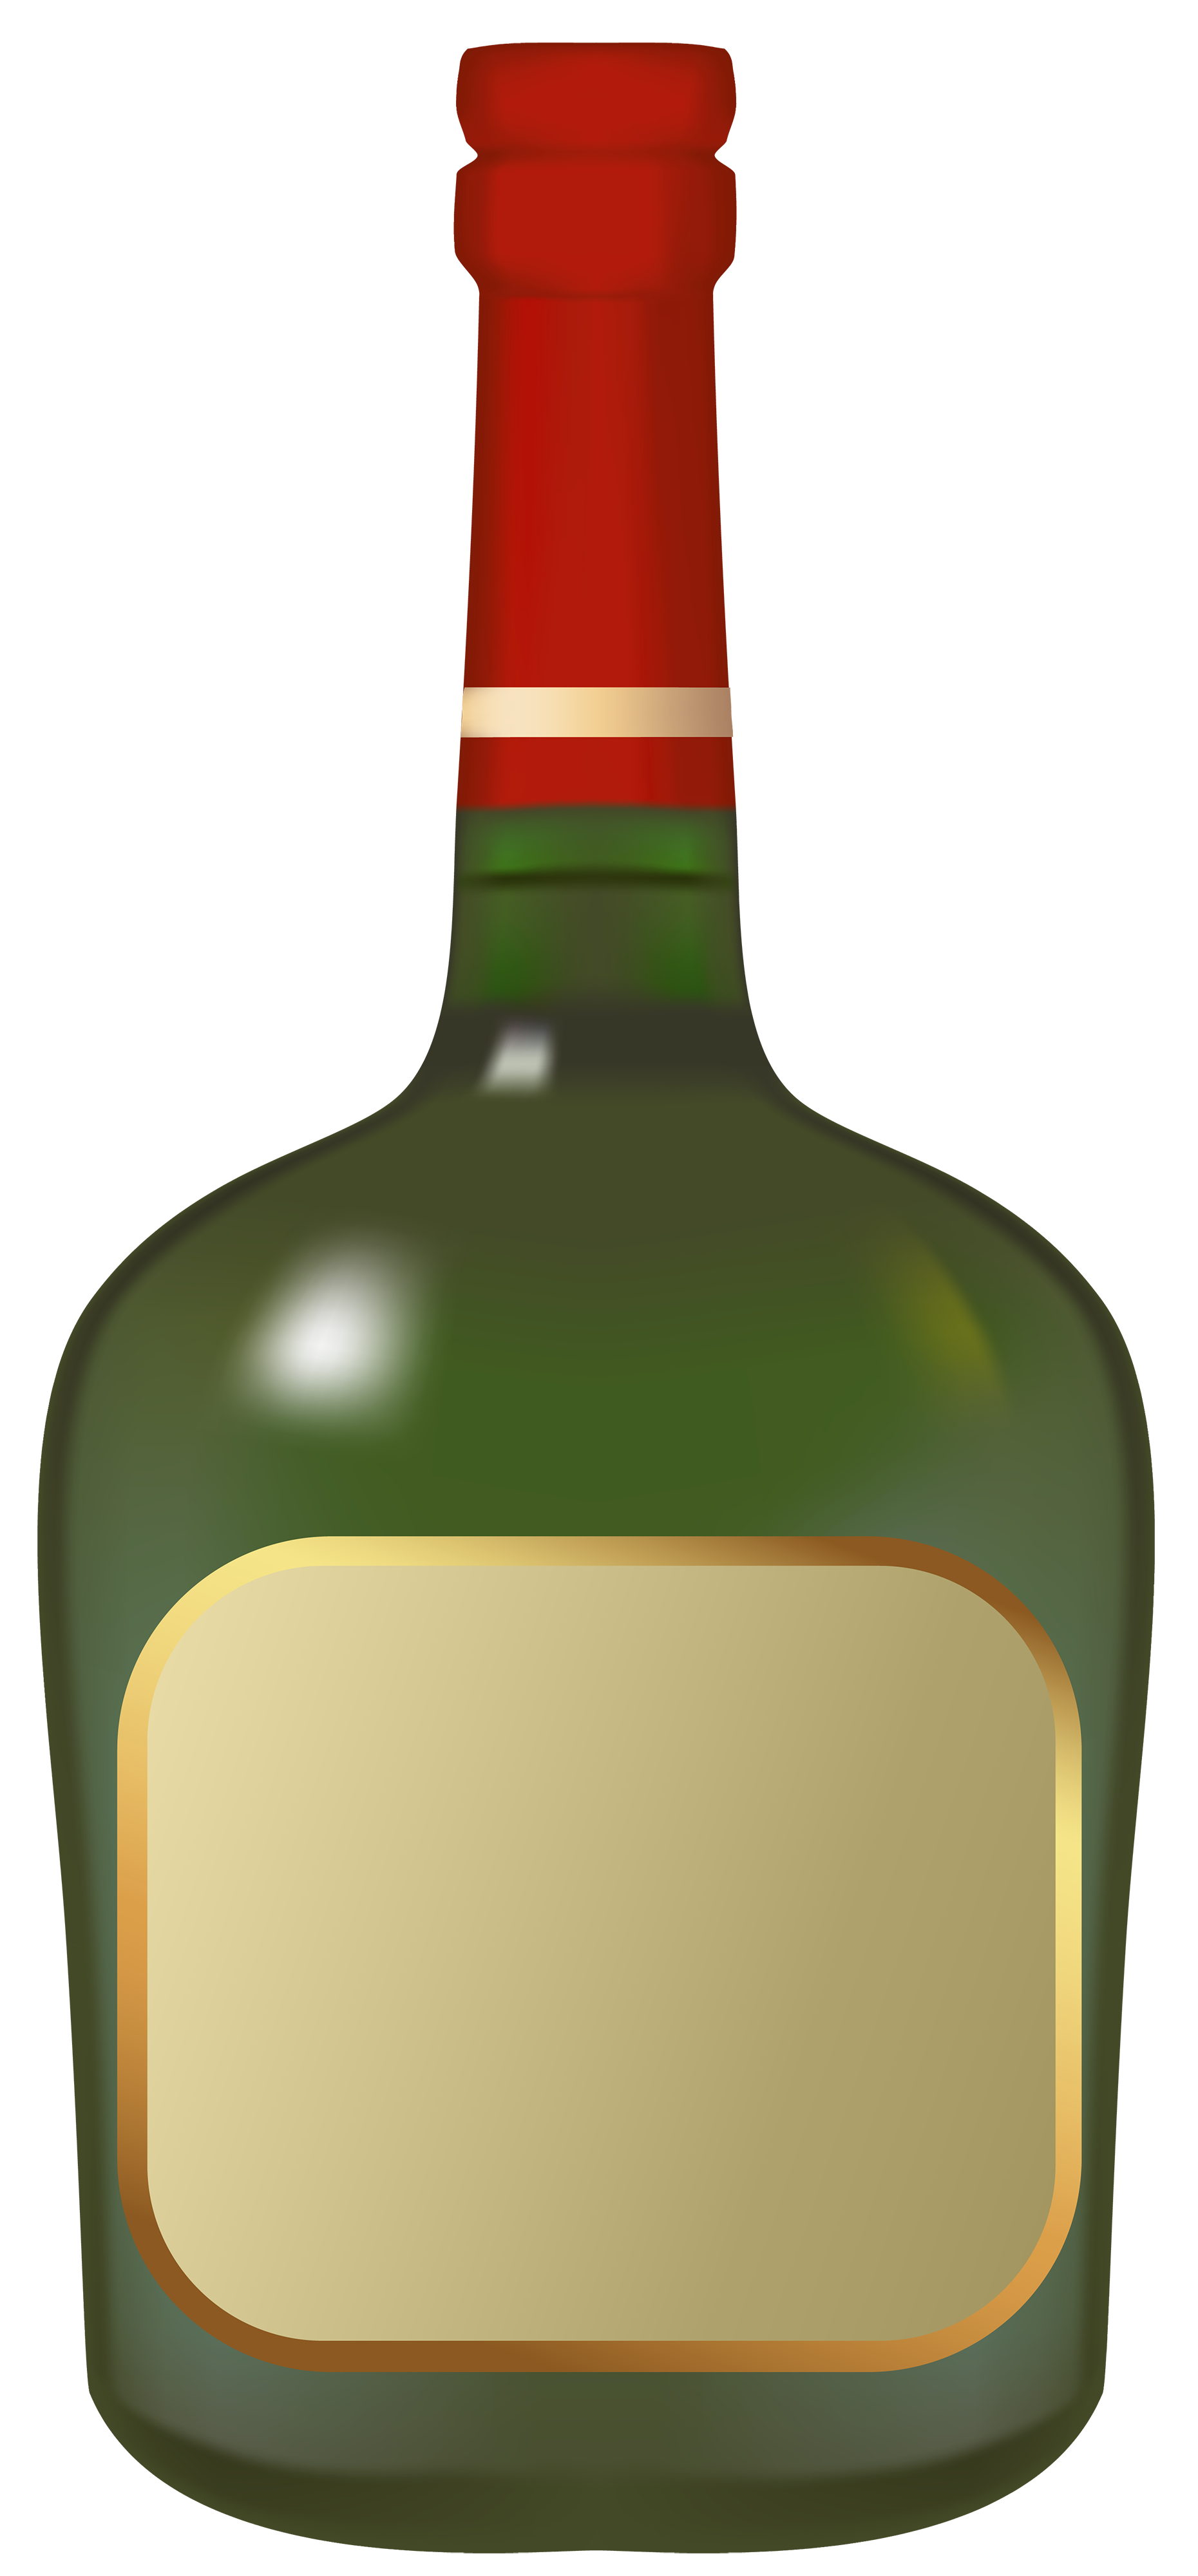 image transparent Liquor png best web. Bottle clipart